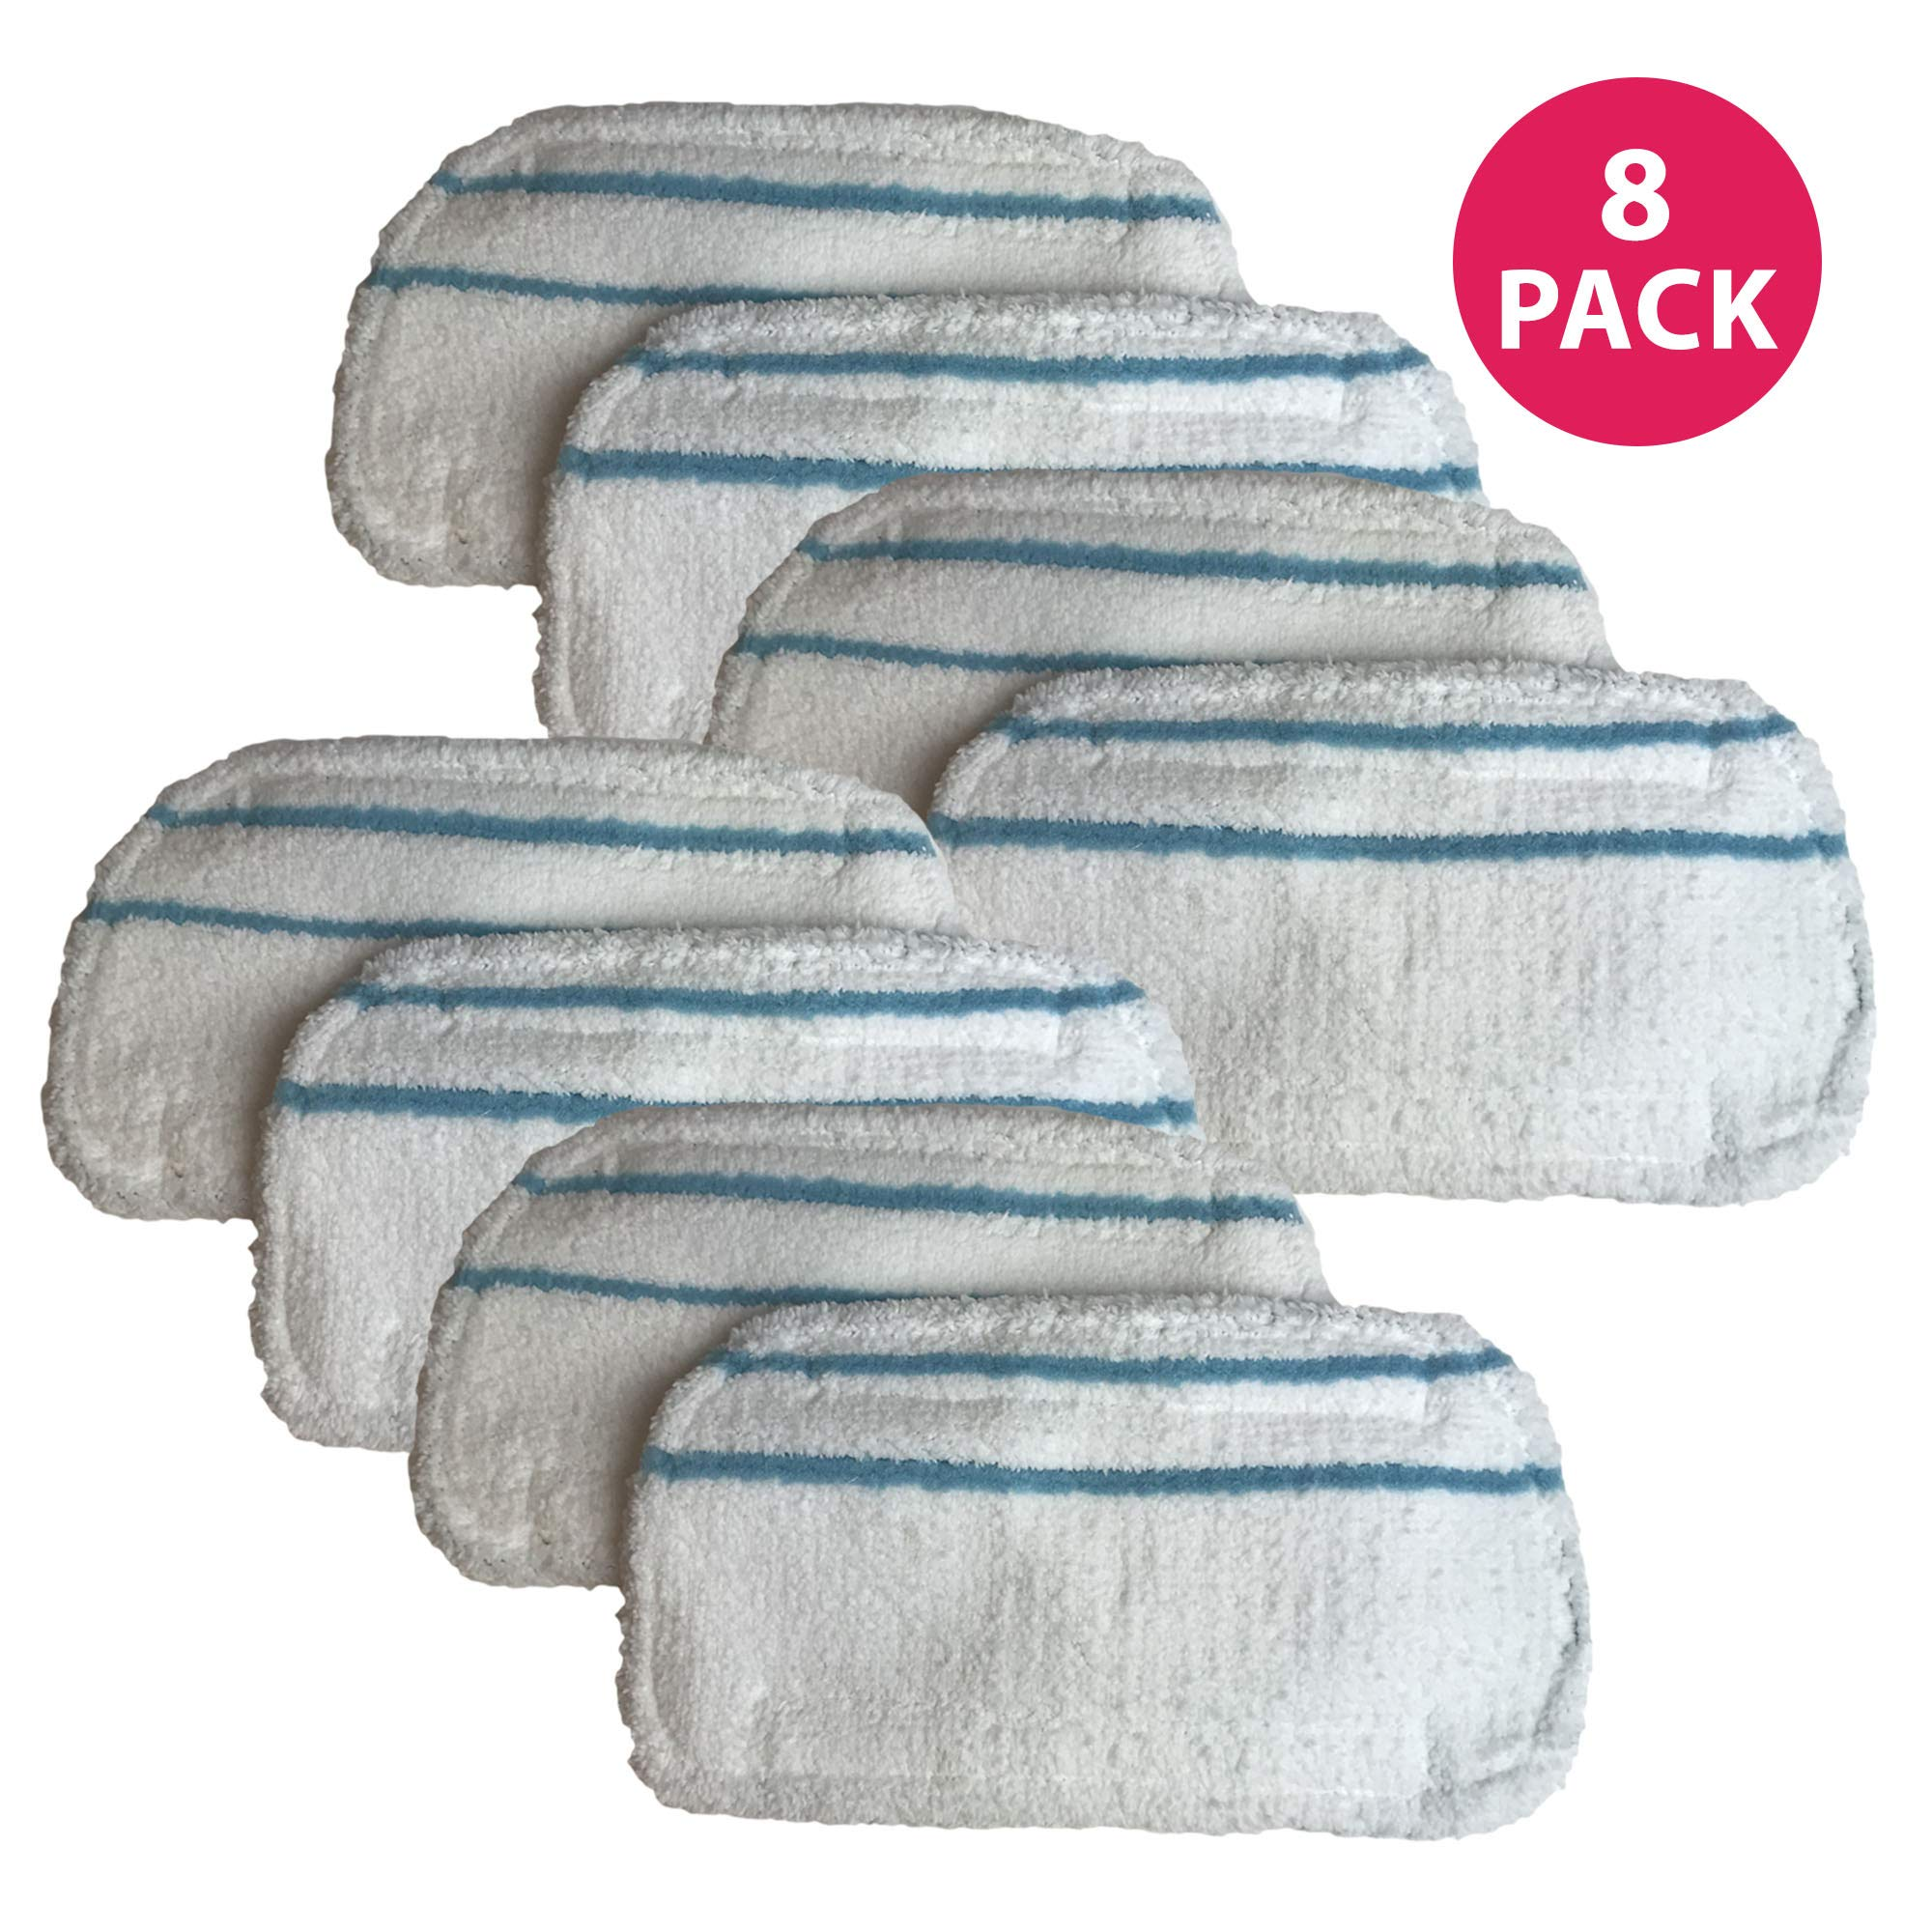 Crucial Vacuum Replacement Mop Pads - Compatible with Black & Decker Part # SMP20 Steam Mop - Microfiber Mop Pads Models - Ideal for Lightweight, Washable, Reusable for Floors, Surfaces (8 Pack) by Crucial Vacuum